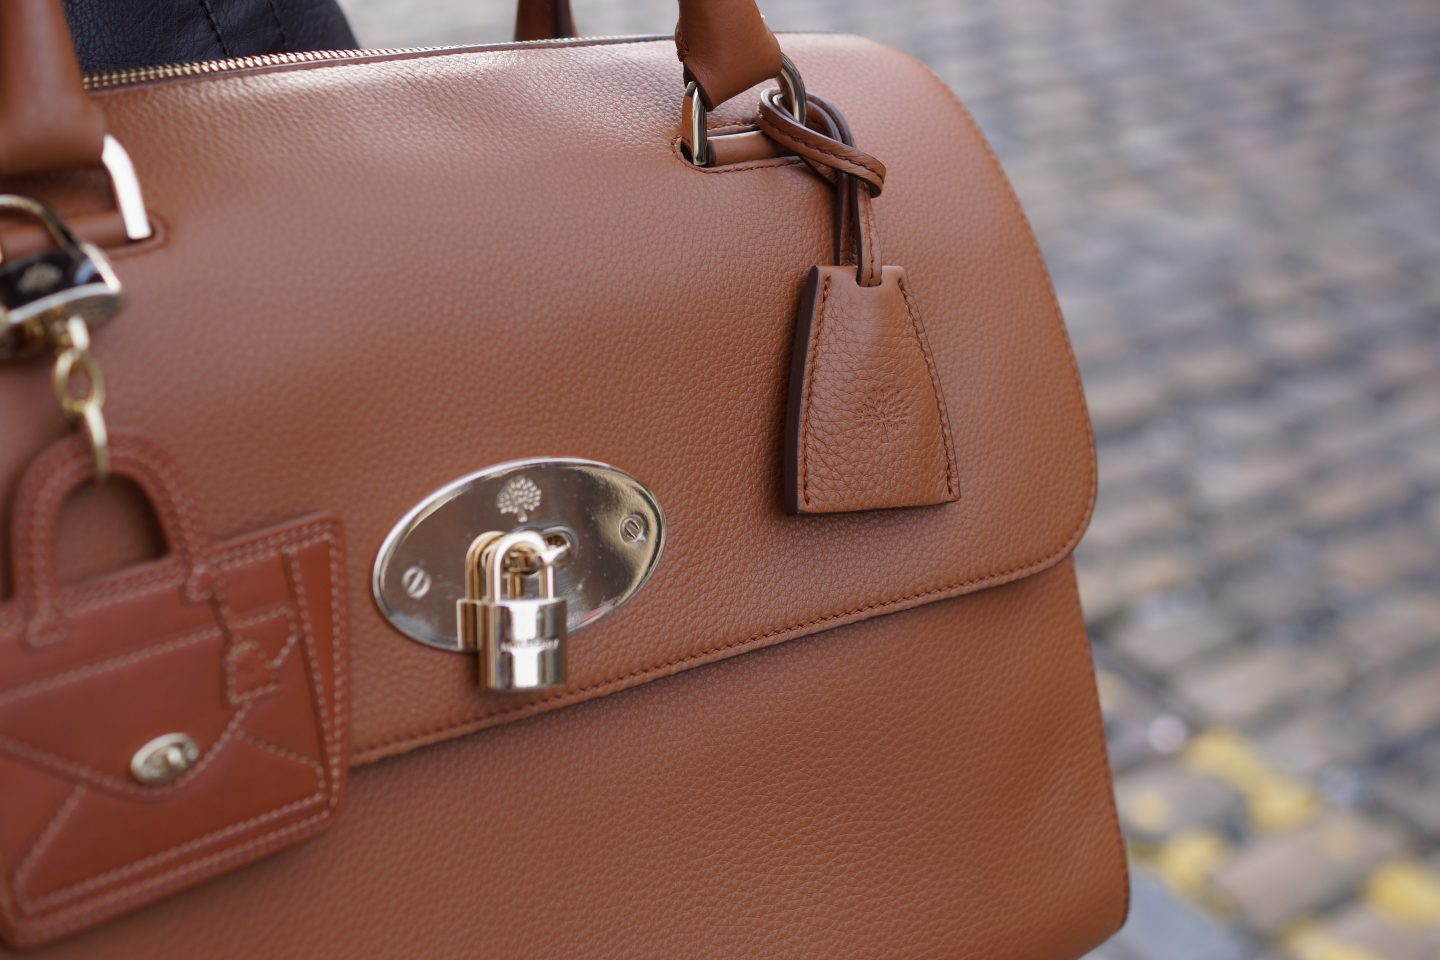 It's All About The Mulberry Bag